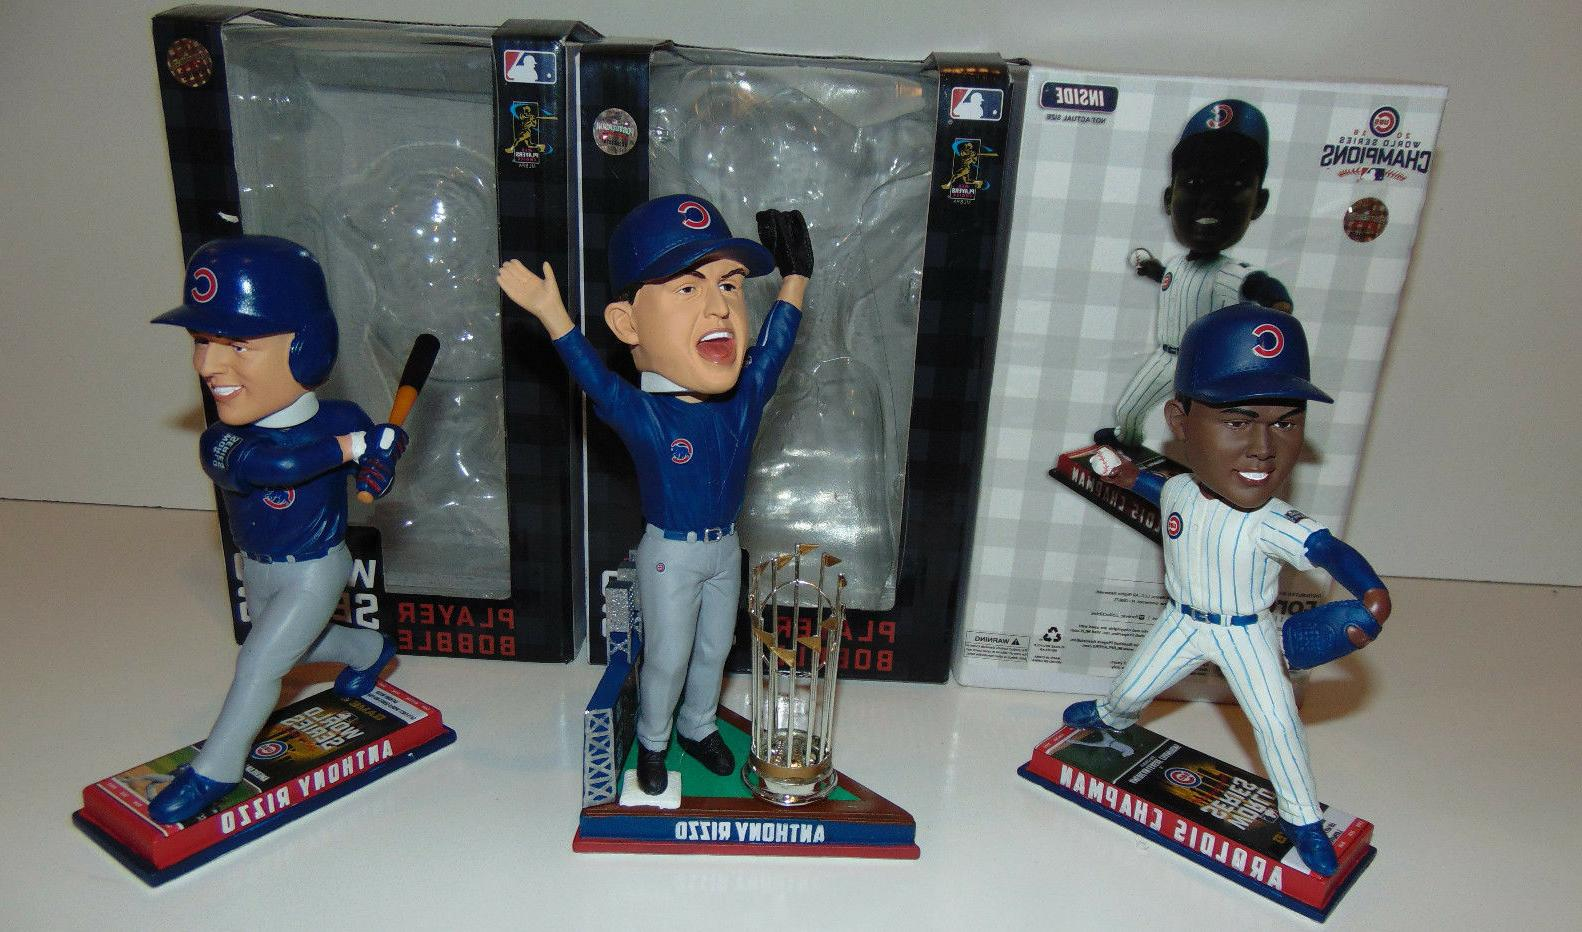 3 chicago cubs rizzo chapman 2016 world